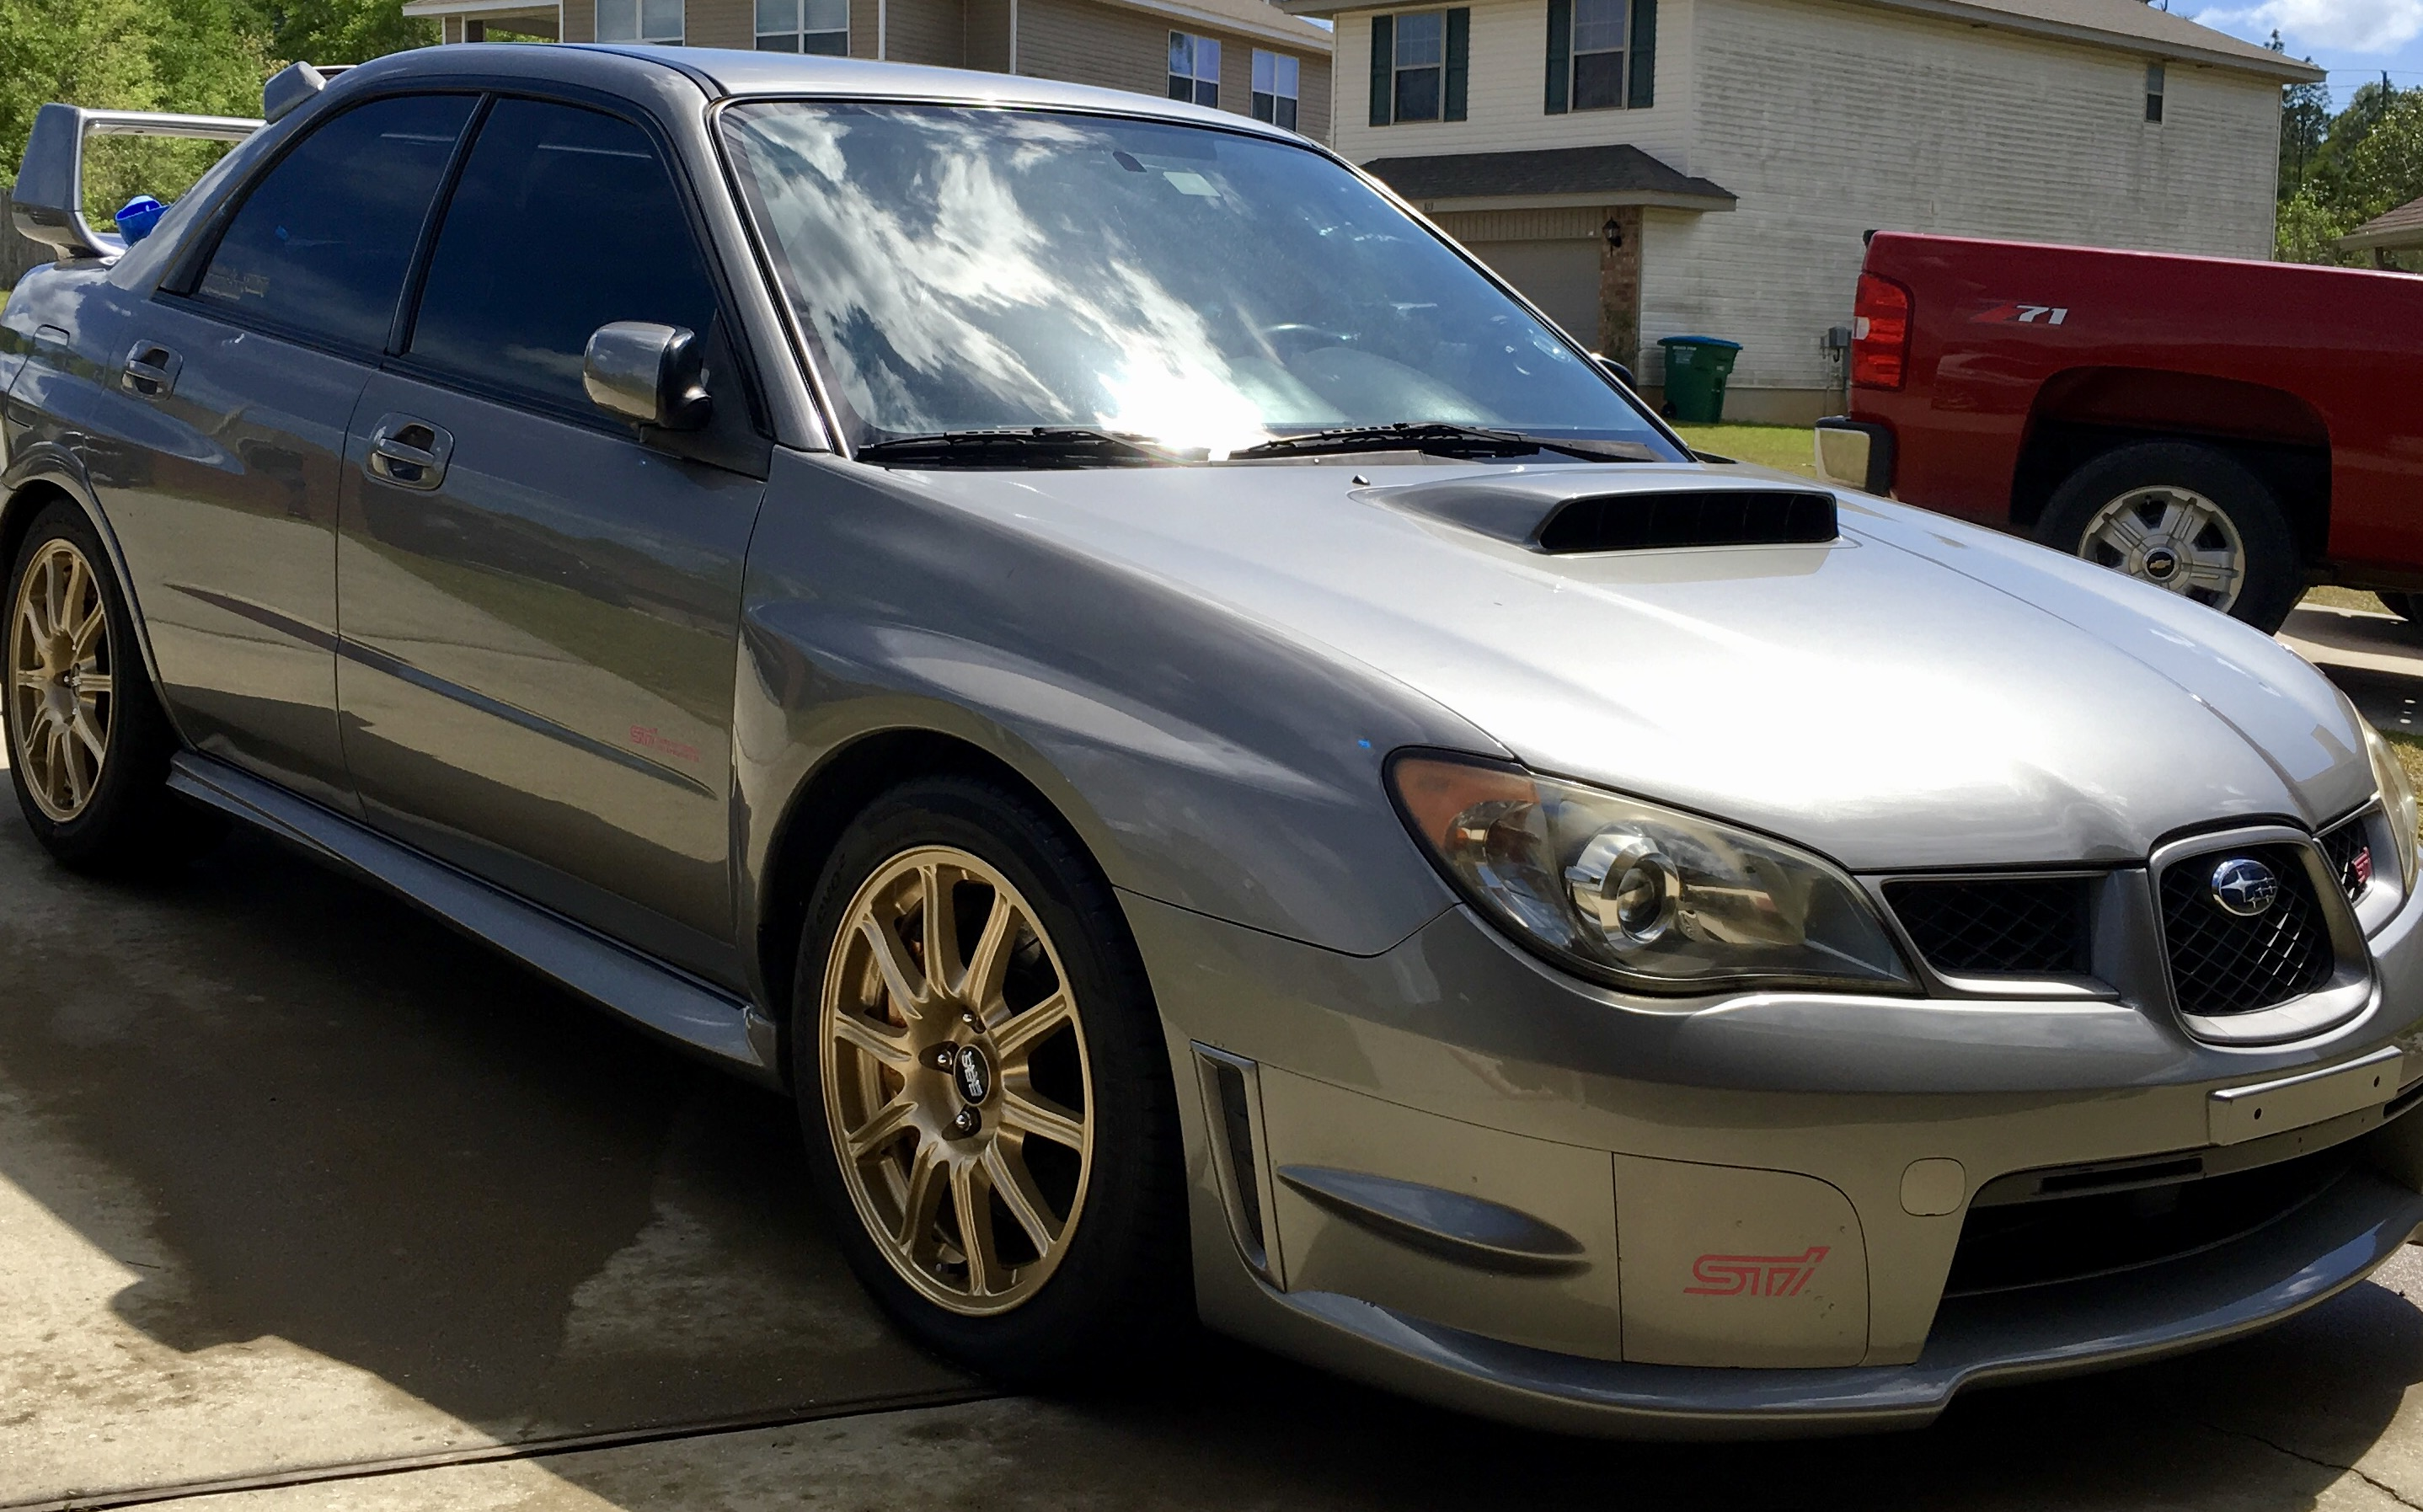 06 Wrx Sti modified 96xxx-img_0021-jpg